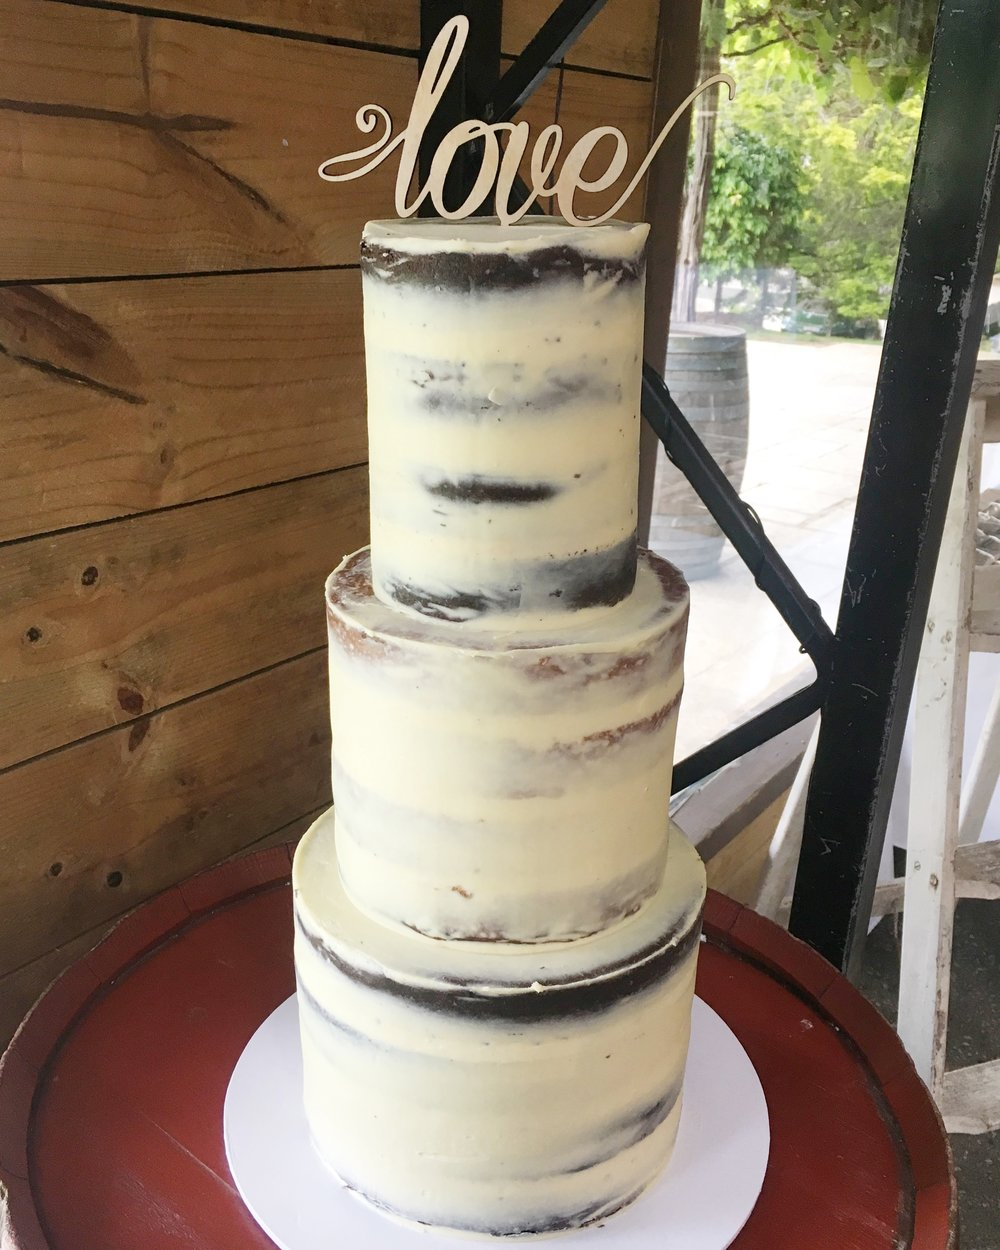 Naked Wedding Cake with 'Love' Topper